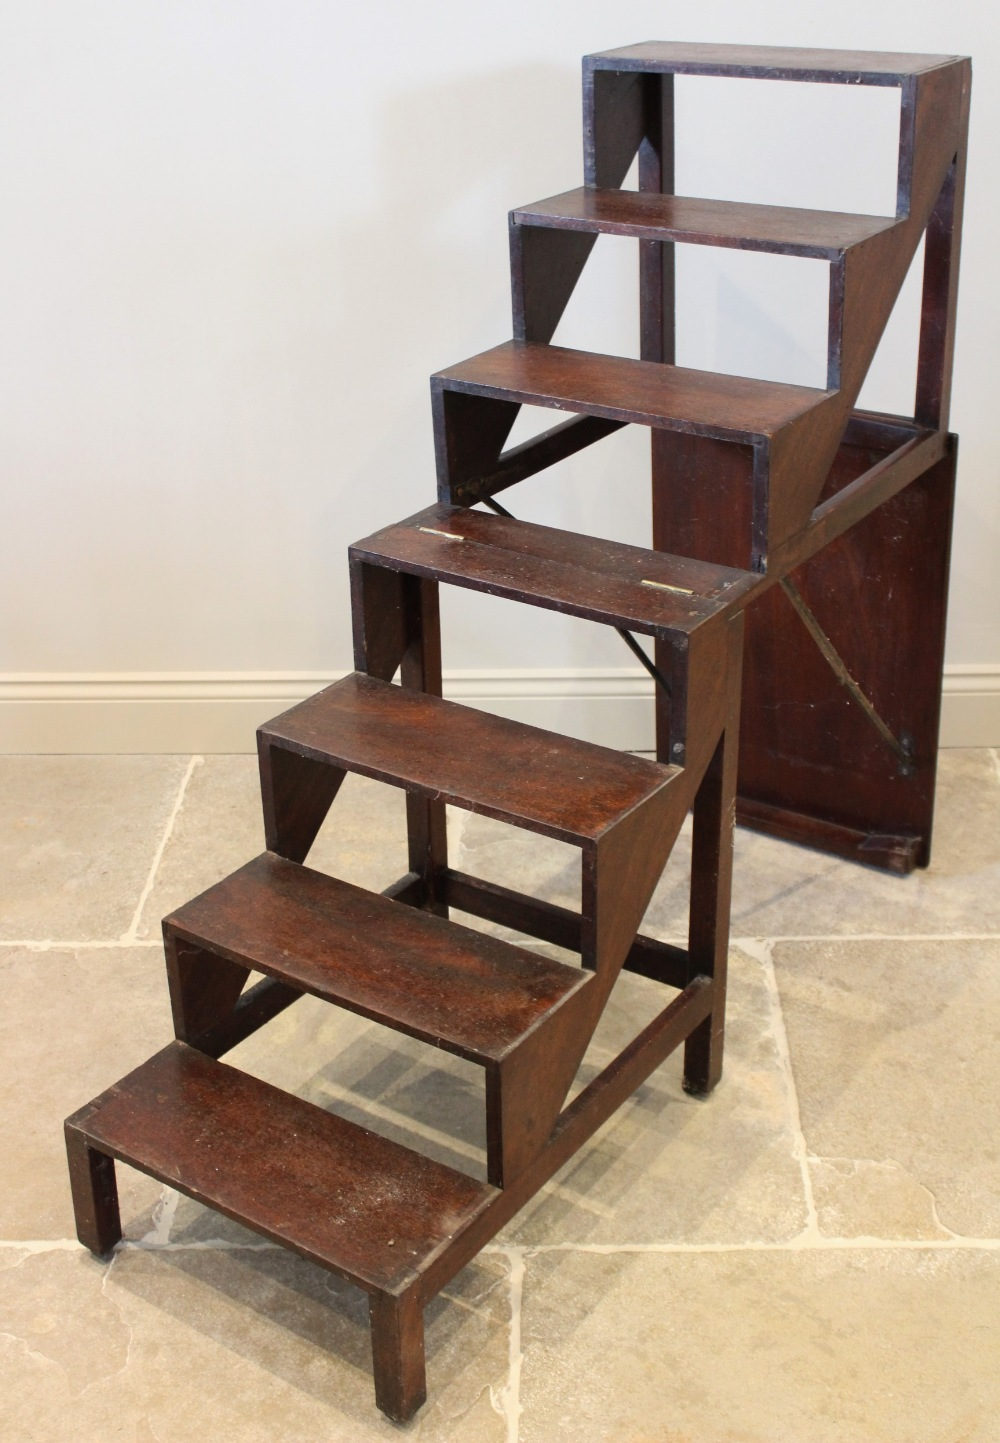 A 19th century mahogany metamorphic table/library steps, the rectangular moulded top on plain legs - Image 3 of 3